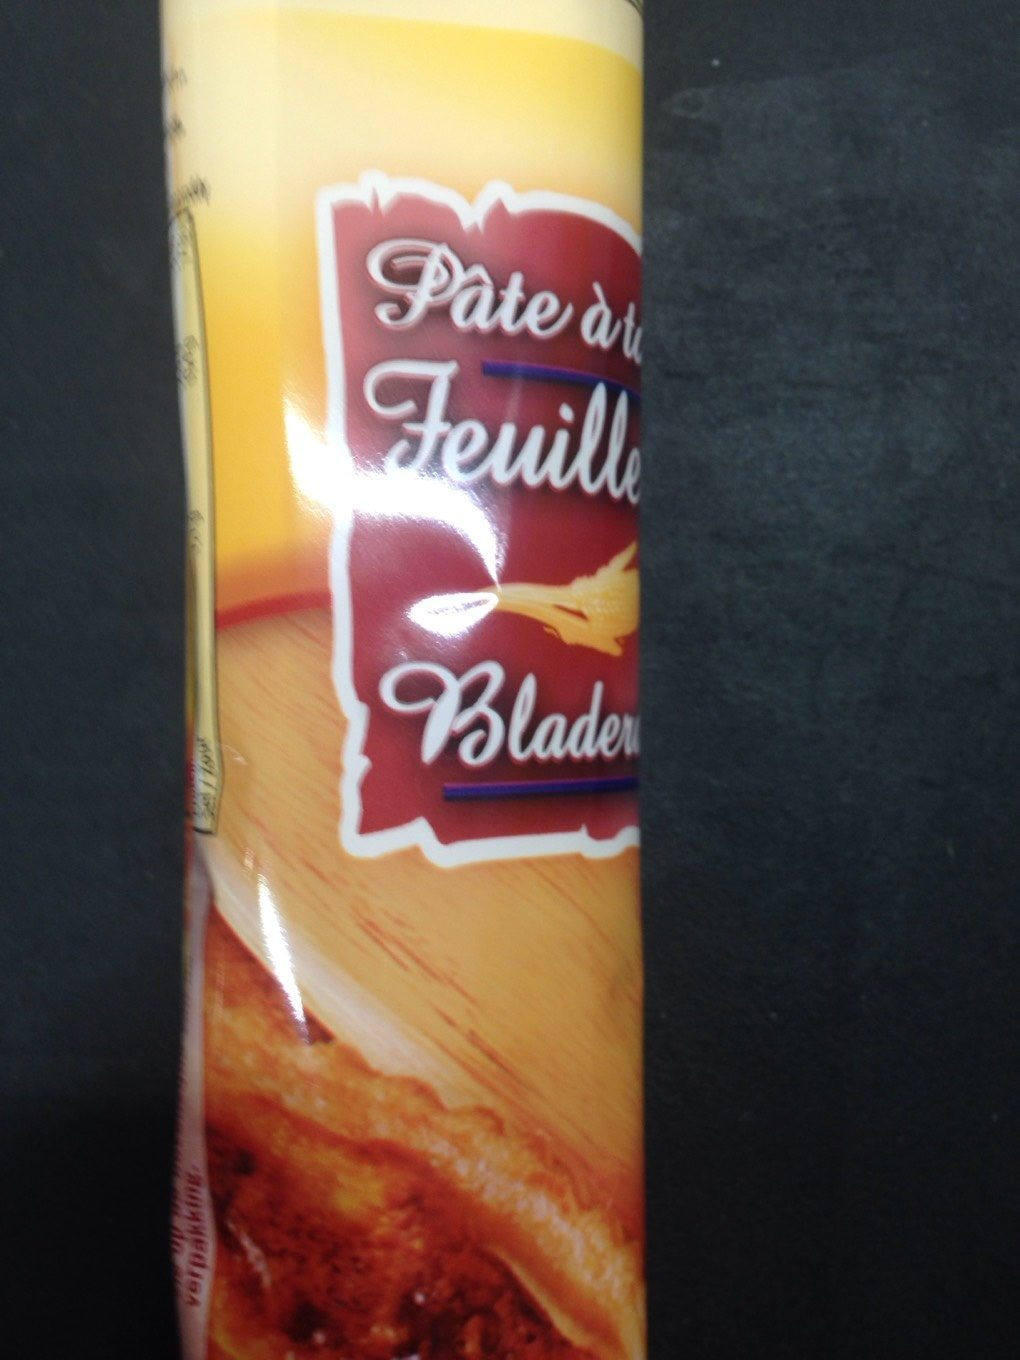 Pate a tarte feuilletee - Product - fr